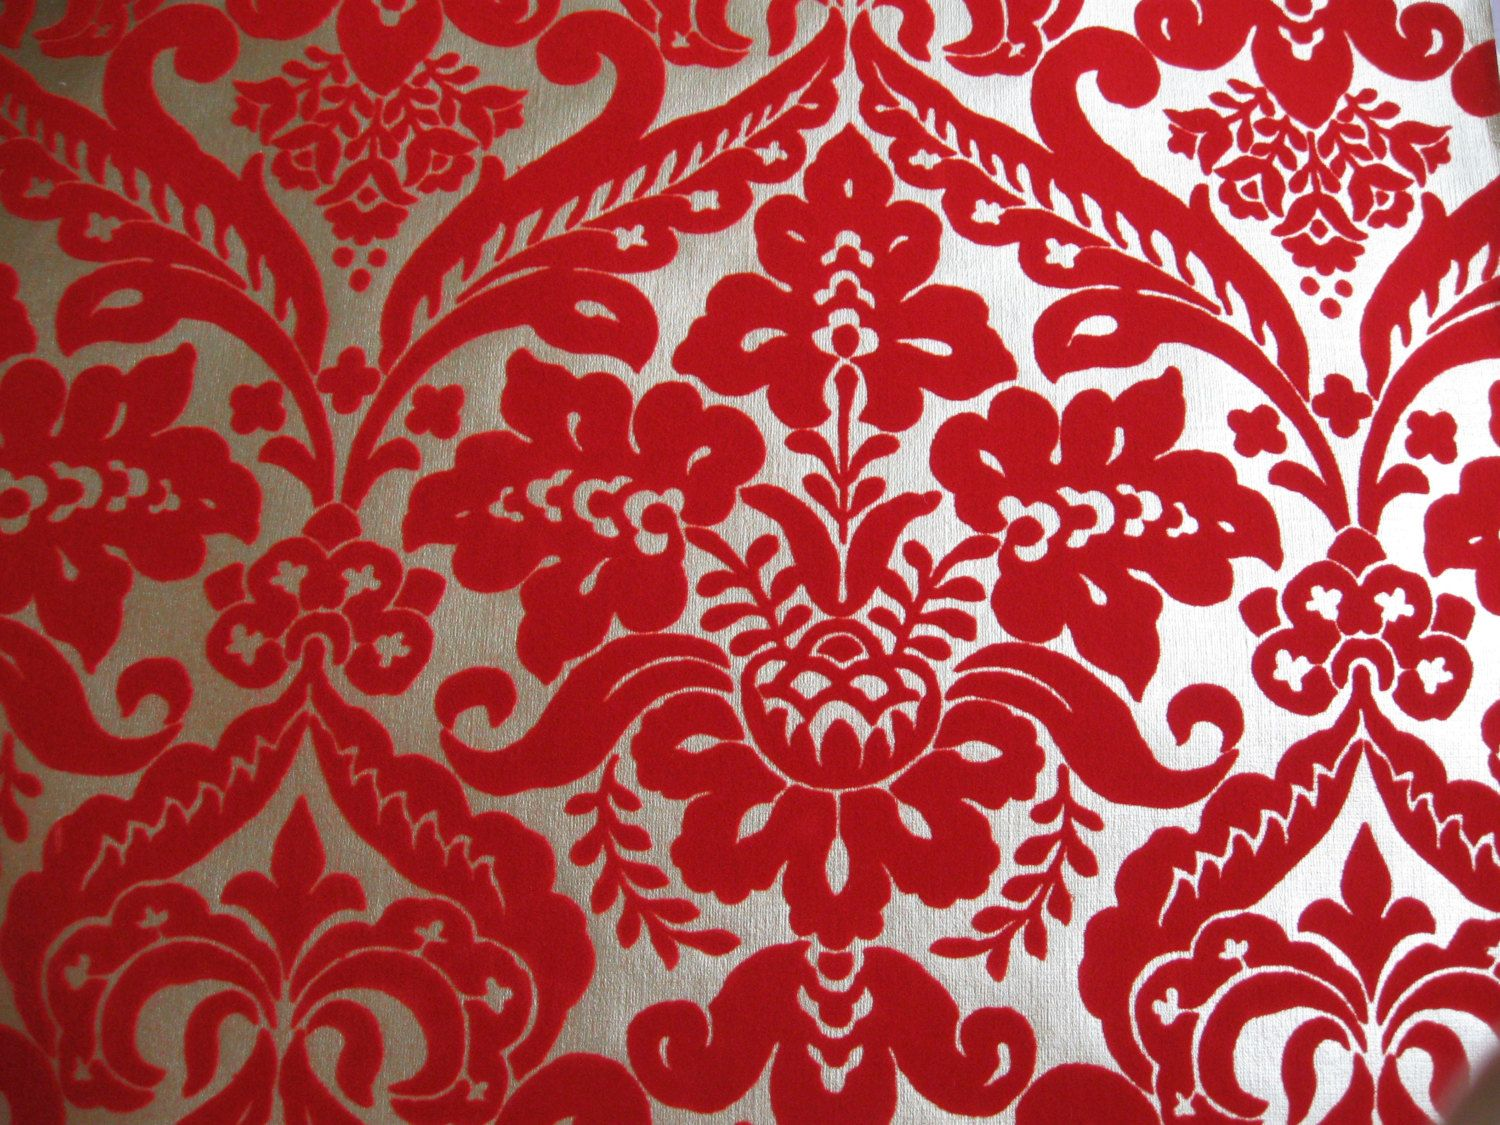 Red Wallpaper Bedroom Ideas Part - 42: Full Roll Flocked Metallic Red And Gold Wallpaper